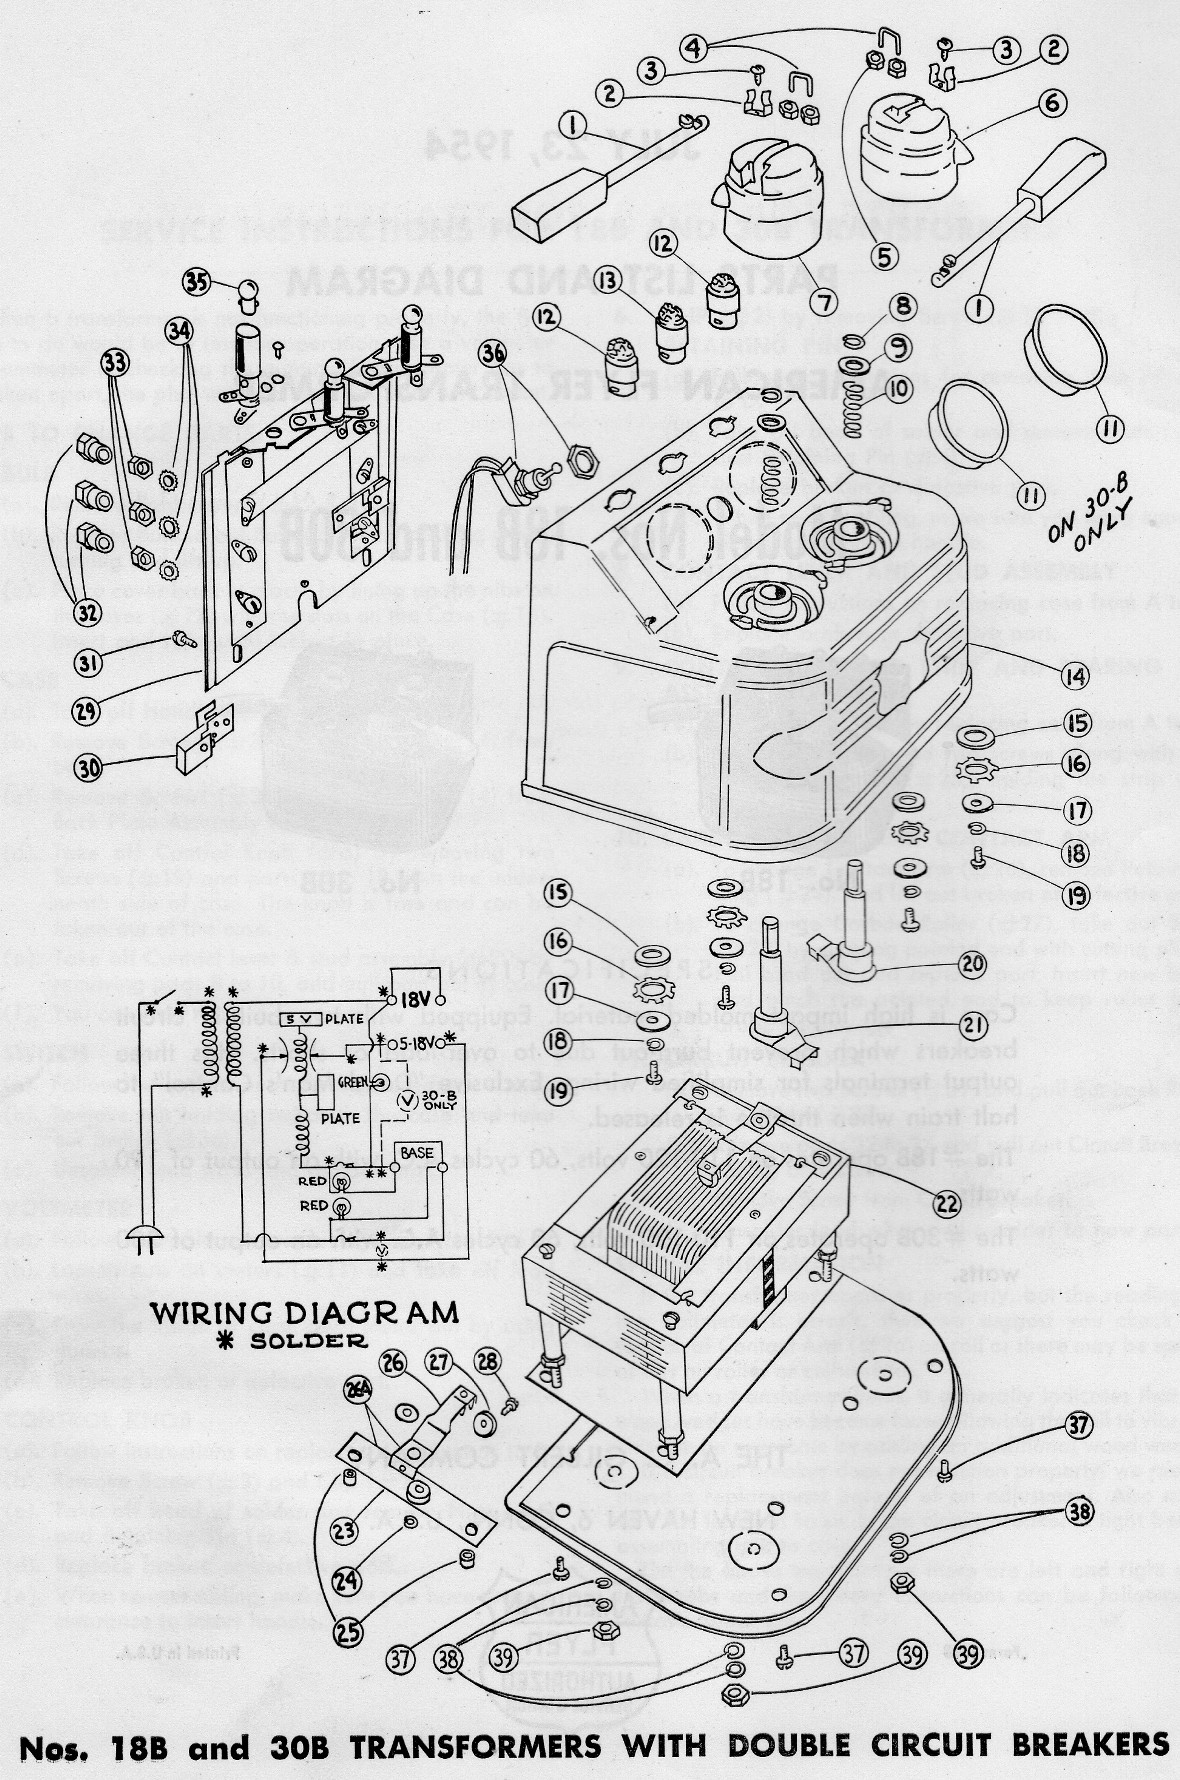 hight resolution of american flyer transformer no 18b 30b parts list and diagram page 2